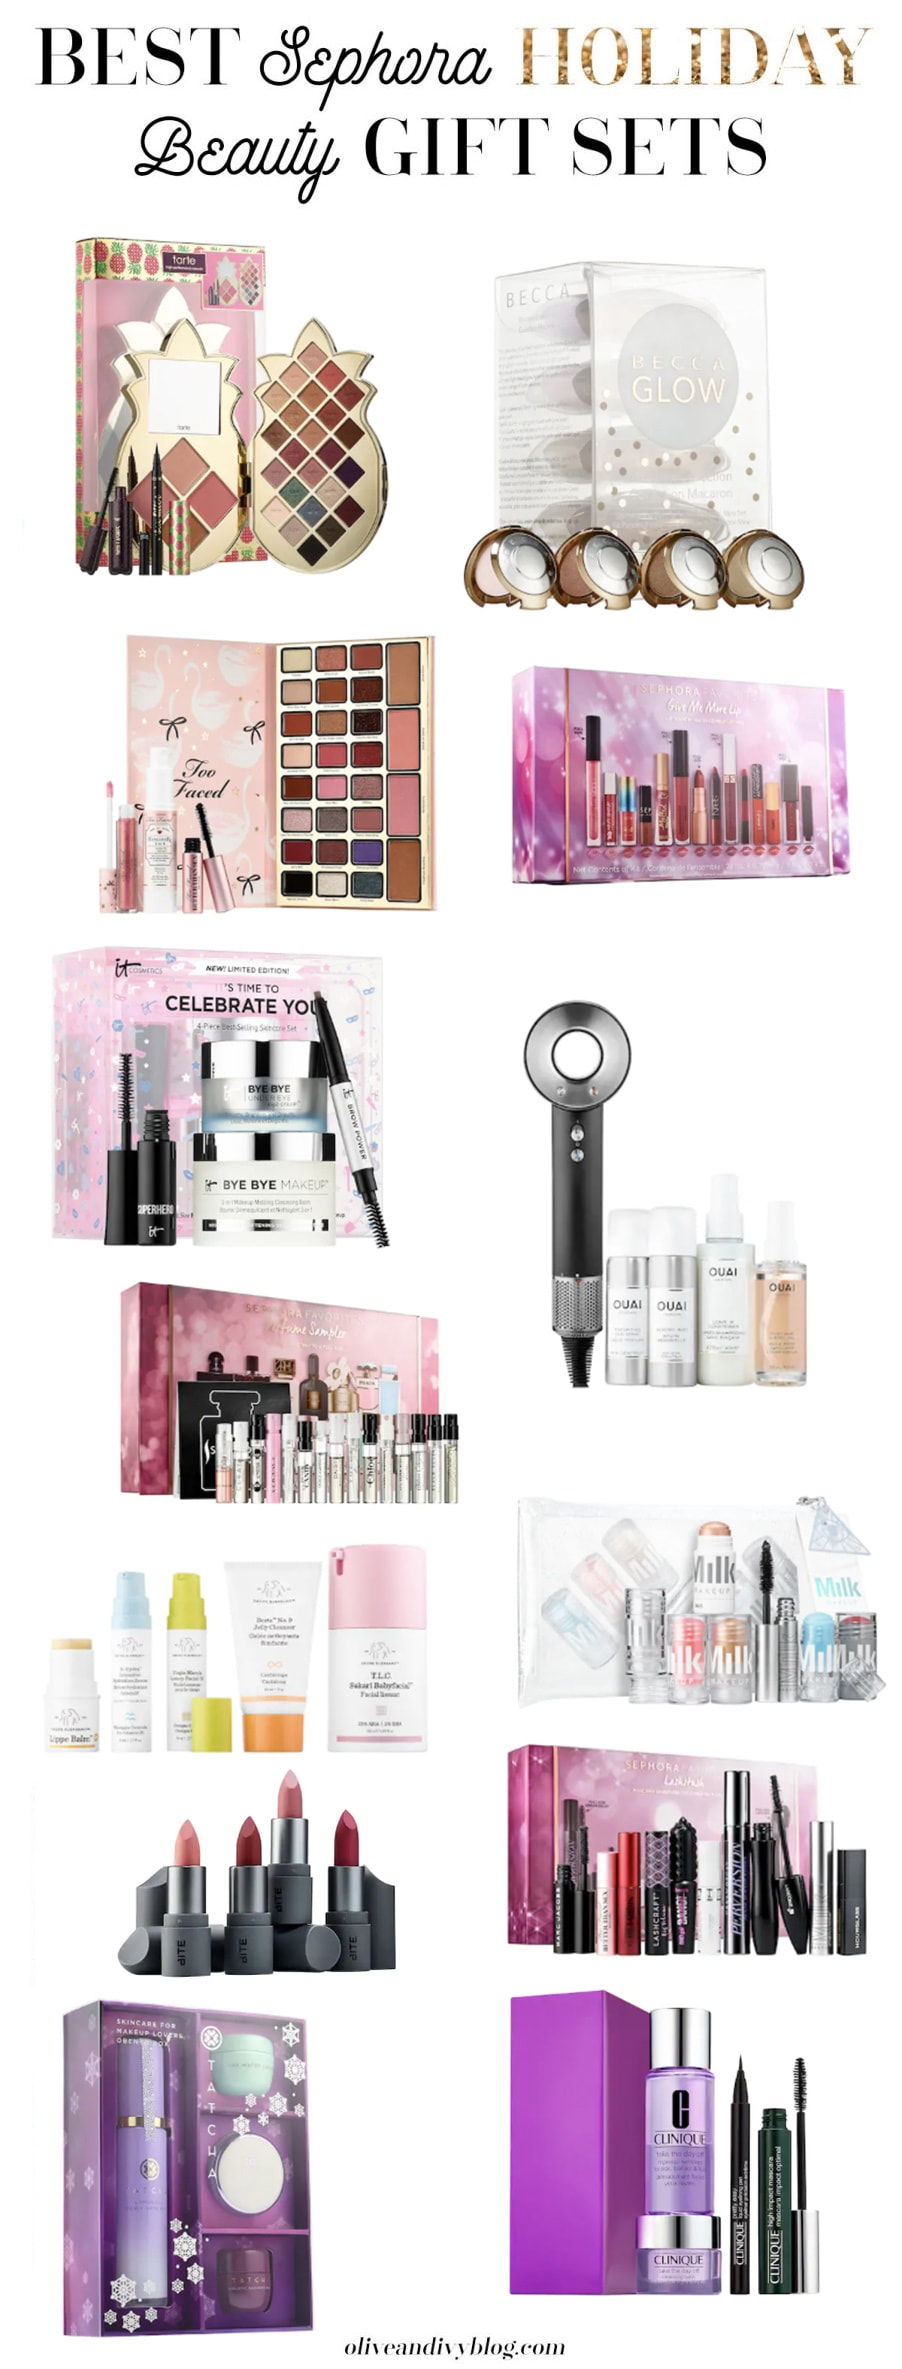 A detailed list of the best Sephora holiday gift sets for 2018! | oliveandivyblog.com